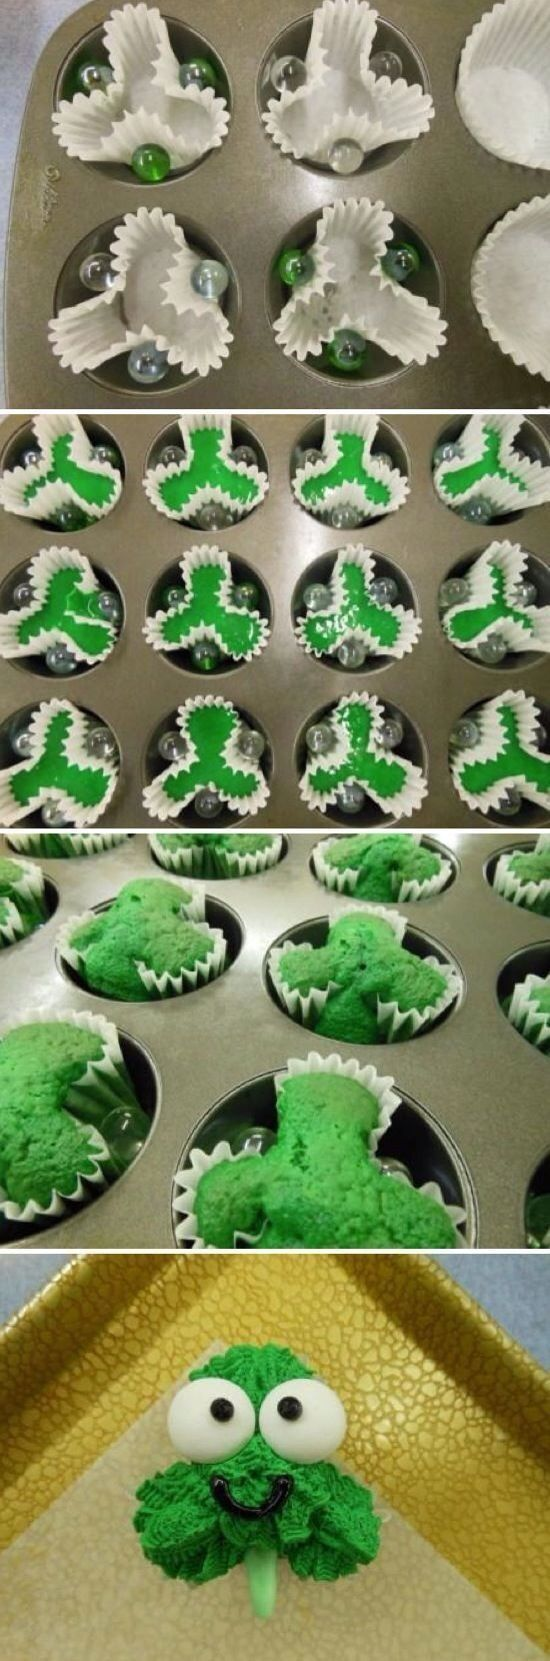 How To Make Shamrock Shaped Cupcakes And A Few Other